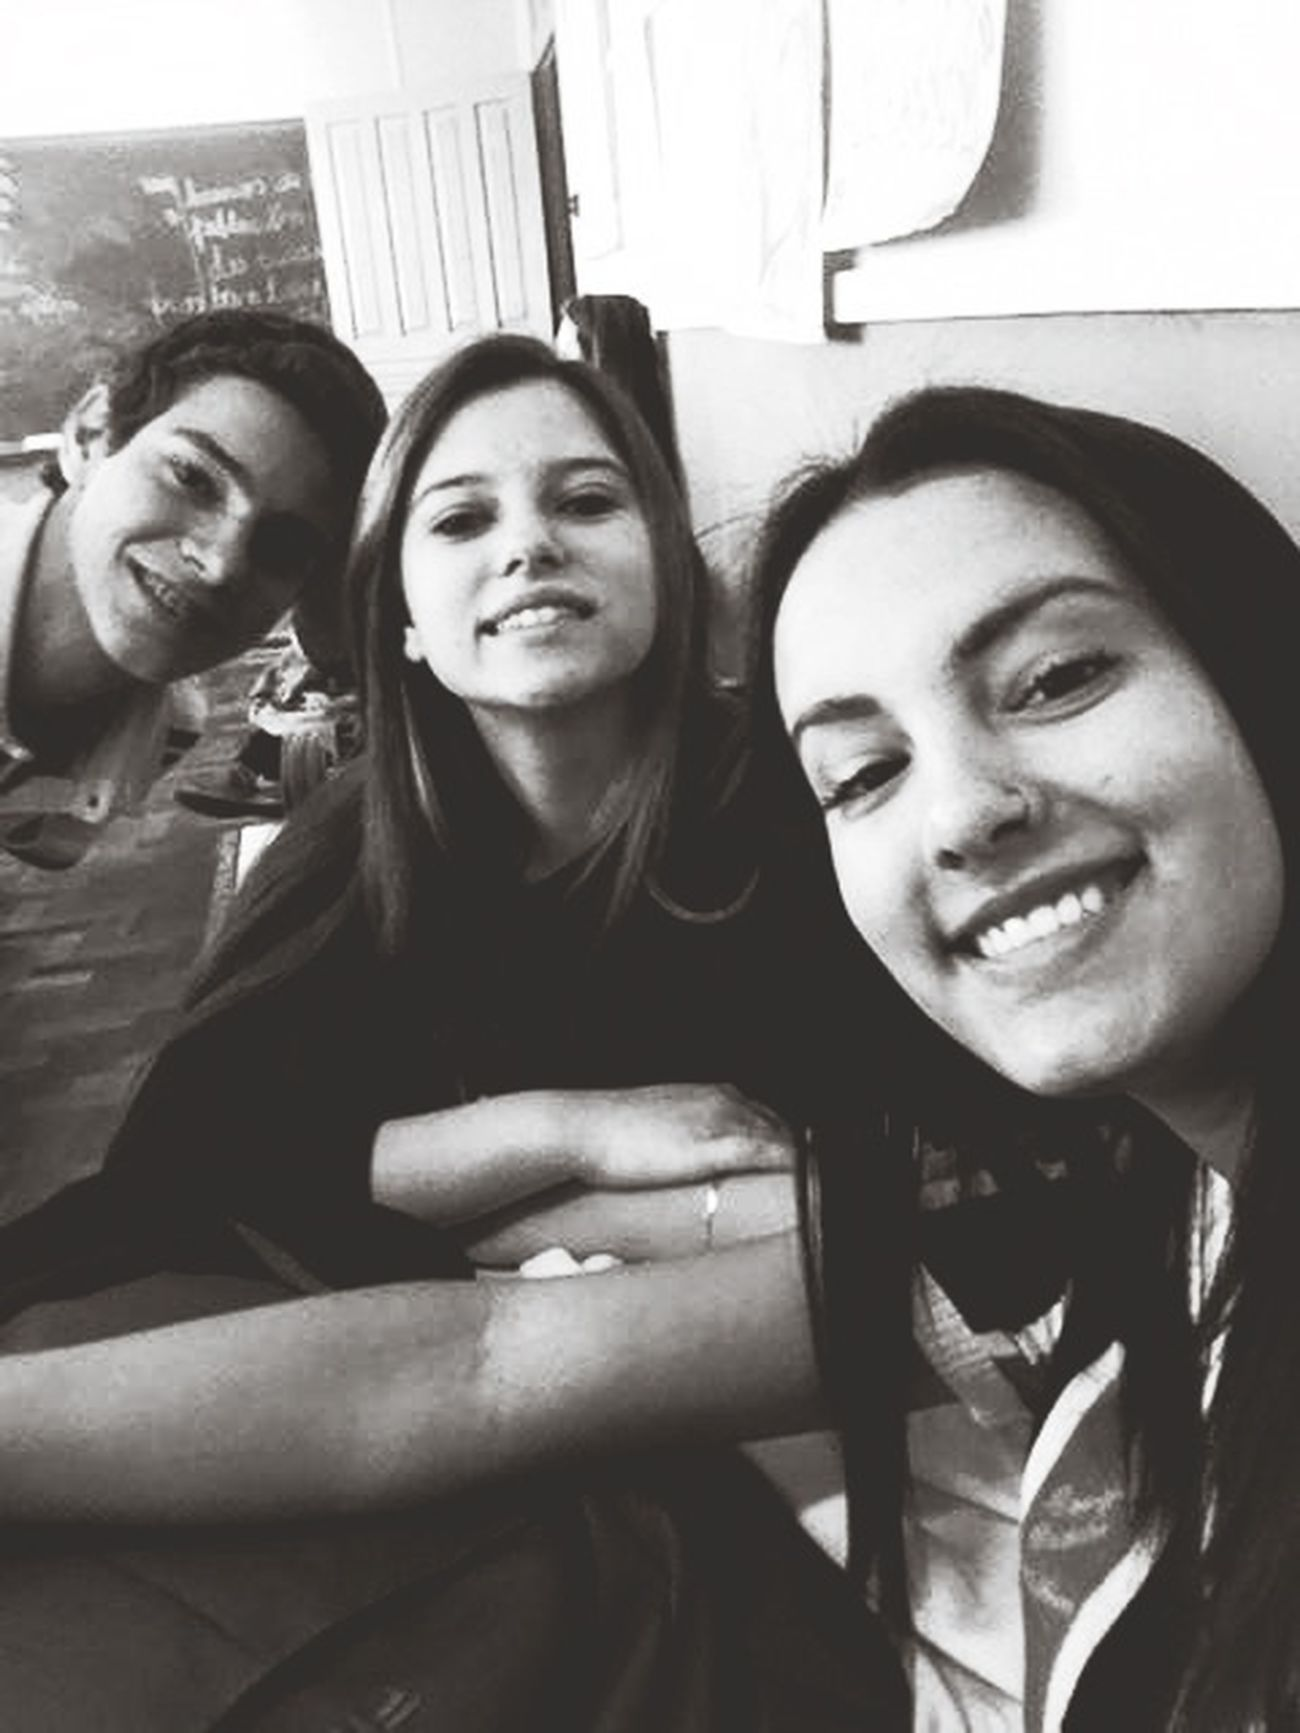 amores!! ❤